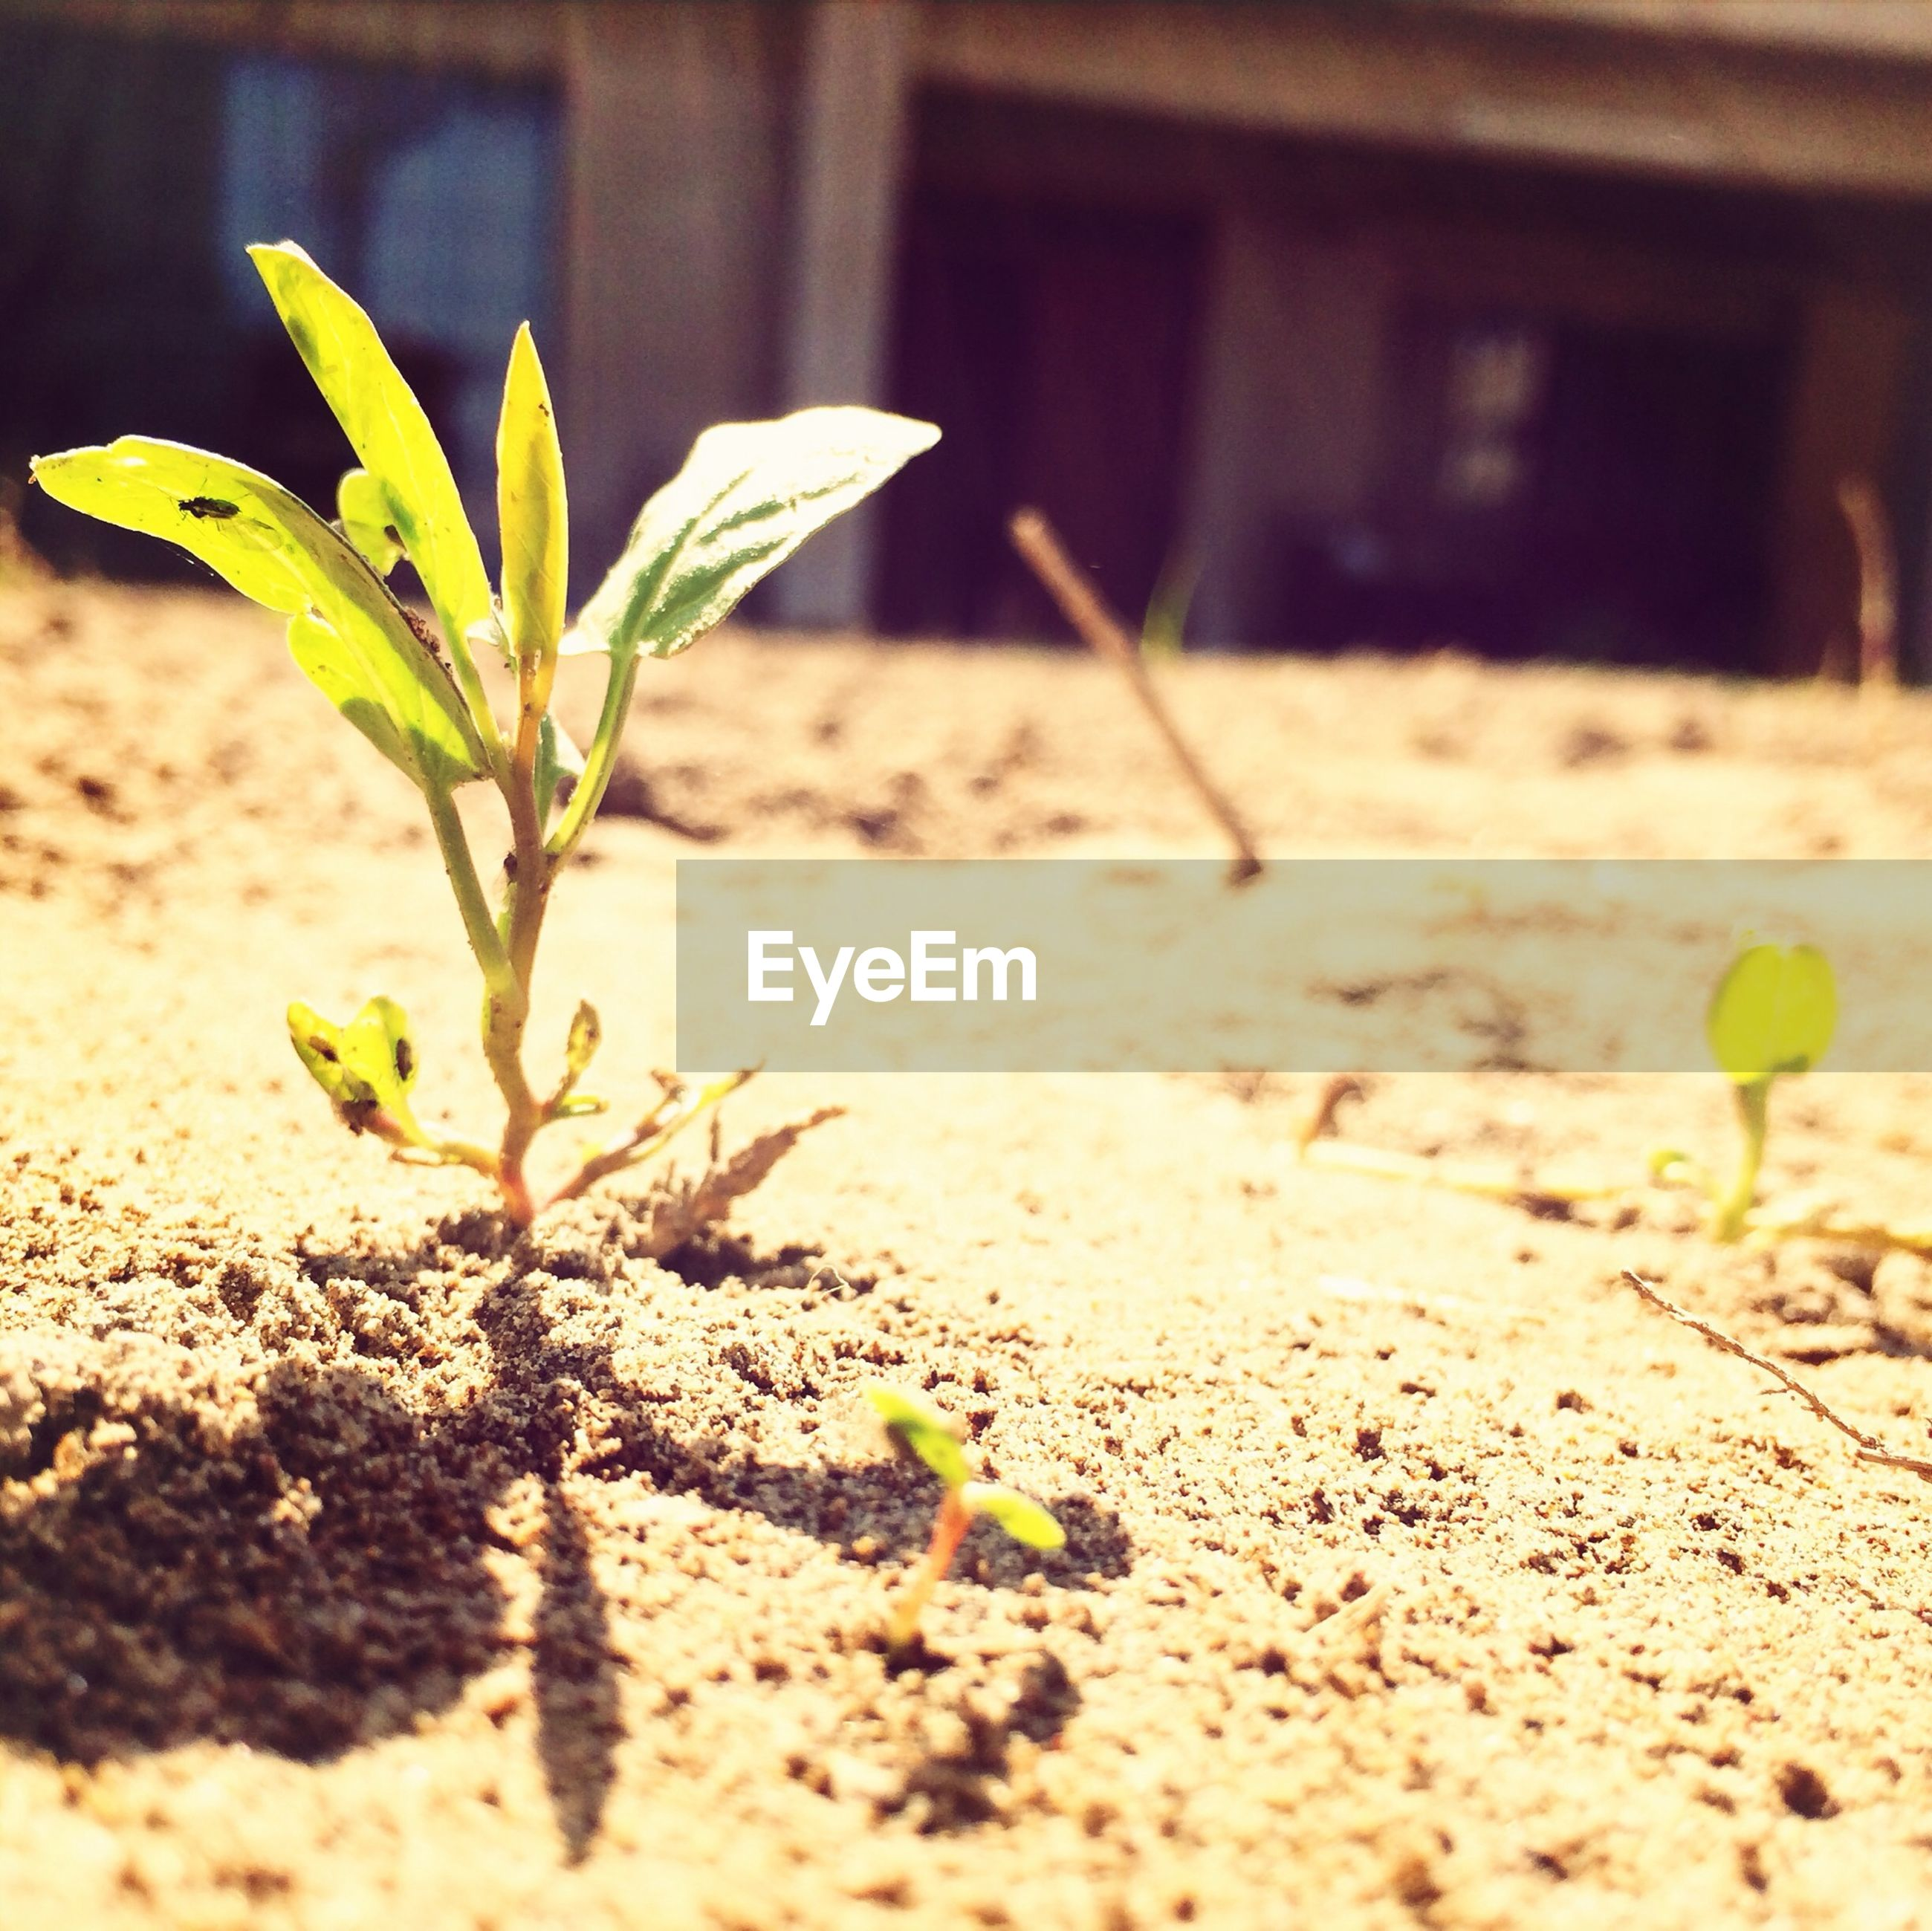 leaf, plant, growth, close-up, focus on foreground, nature, selective focus, sand, fragility, green color, growing, day, stem, no people, sunlight, flower, outdoors, freshness, beauty in nature, potted plant